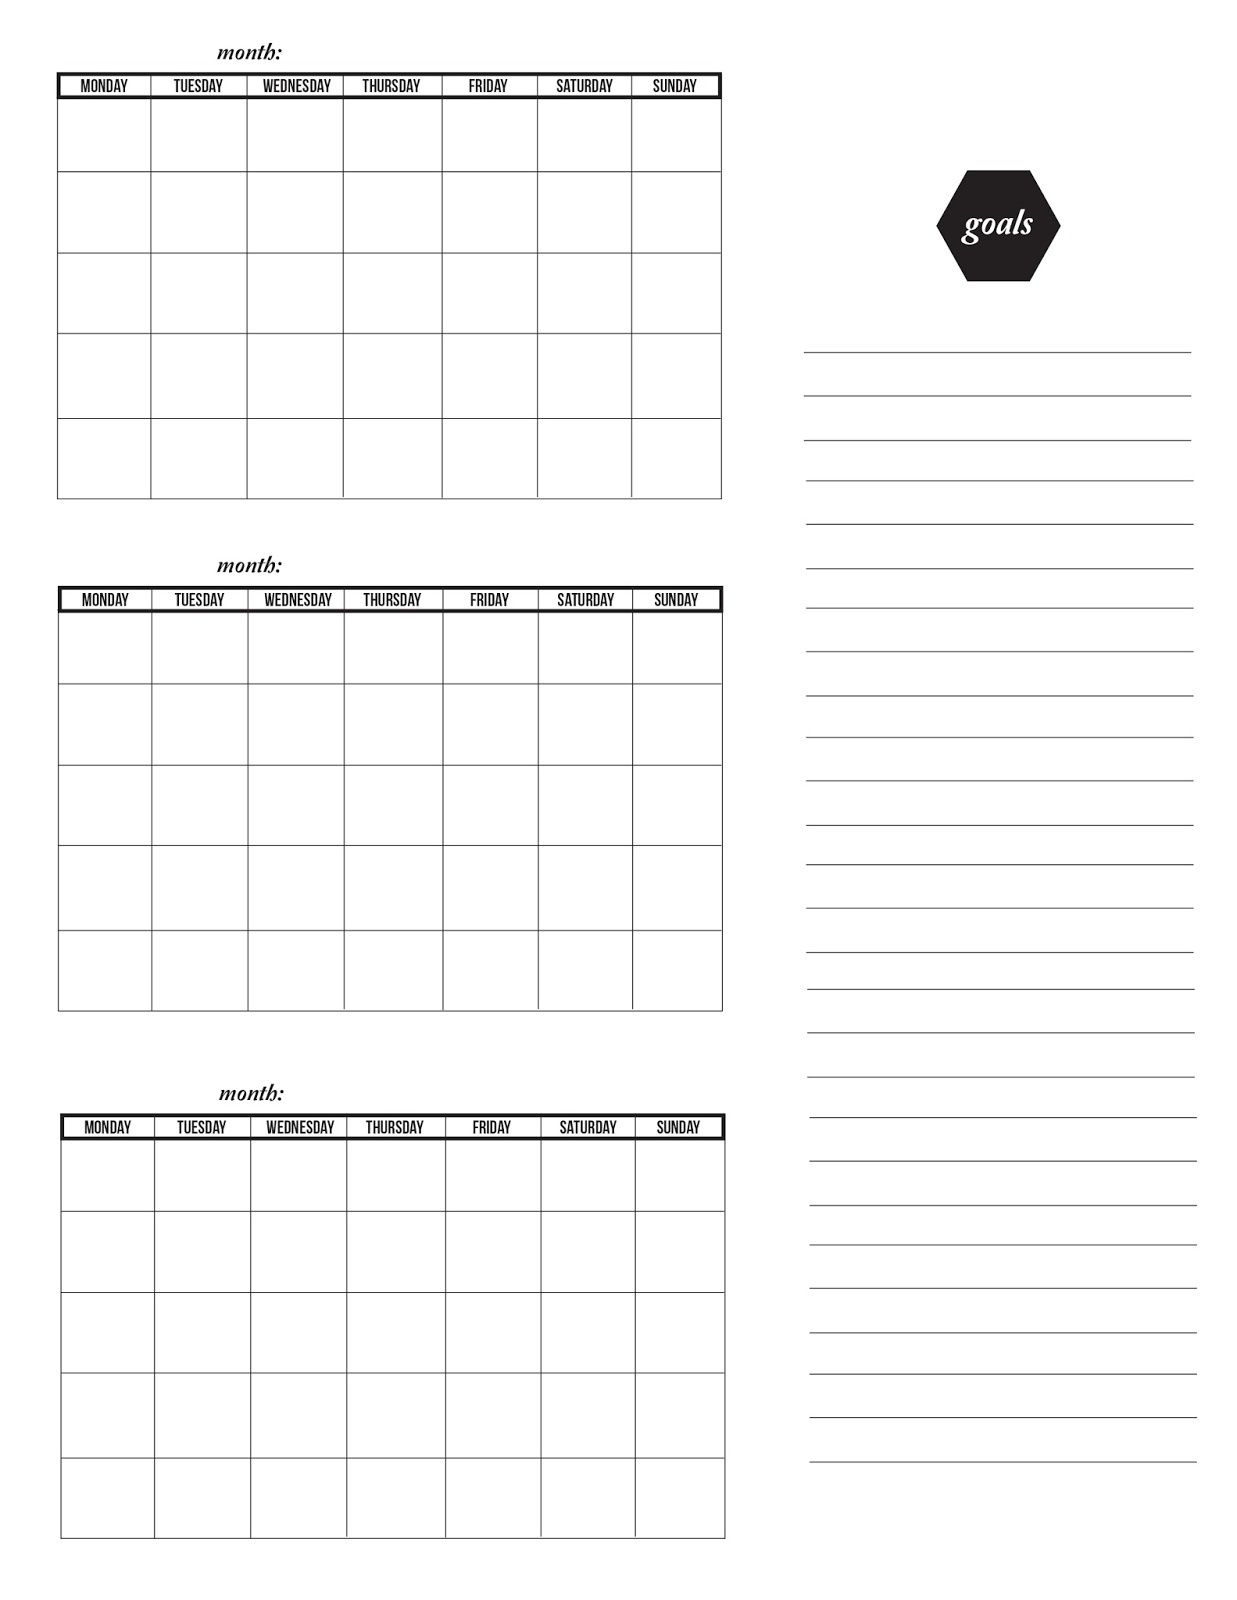 Three Month Calendar Template | Printable Calendar Template inside Three Month Calendar Template